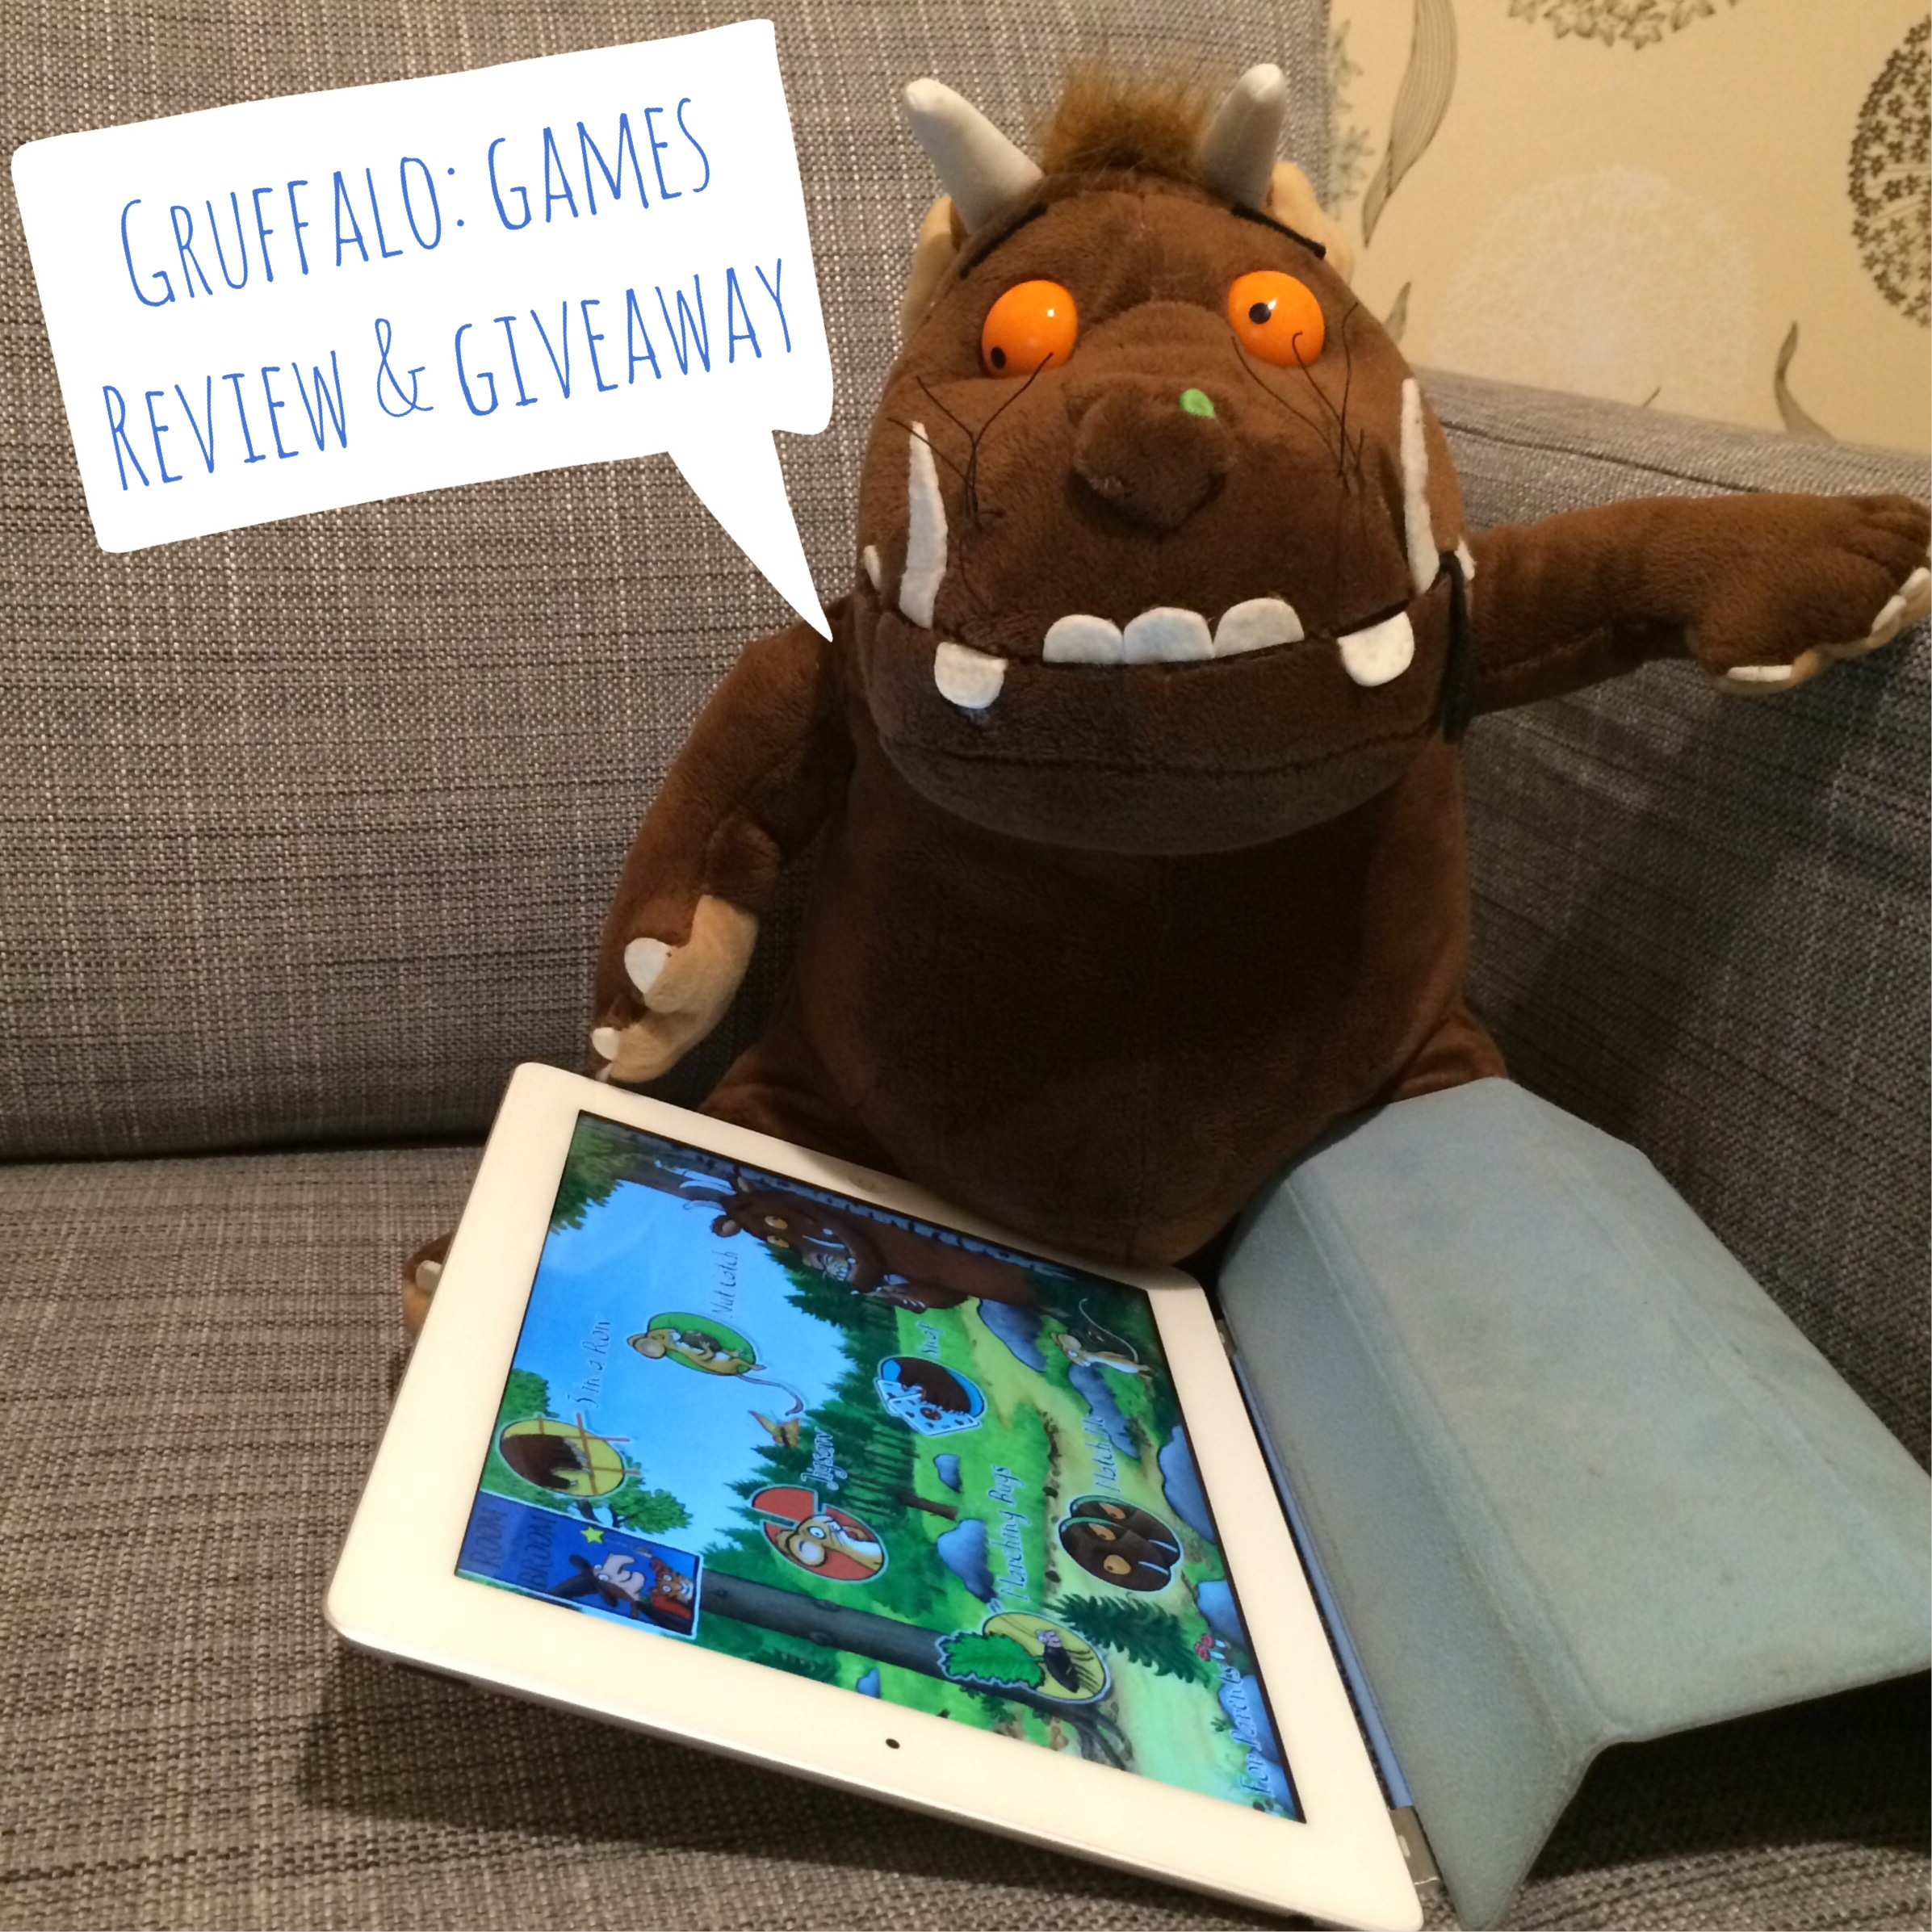 Reveiw of the Gruffalo ipad app